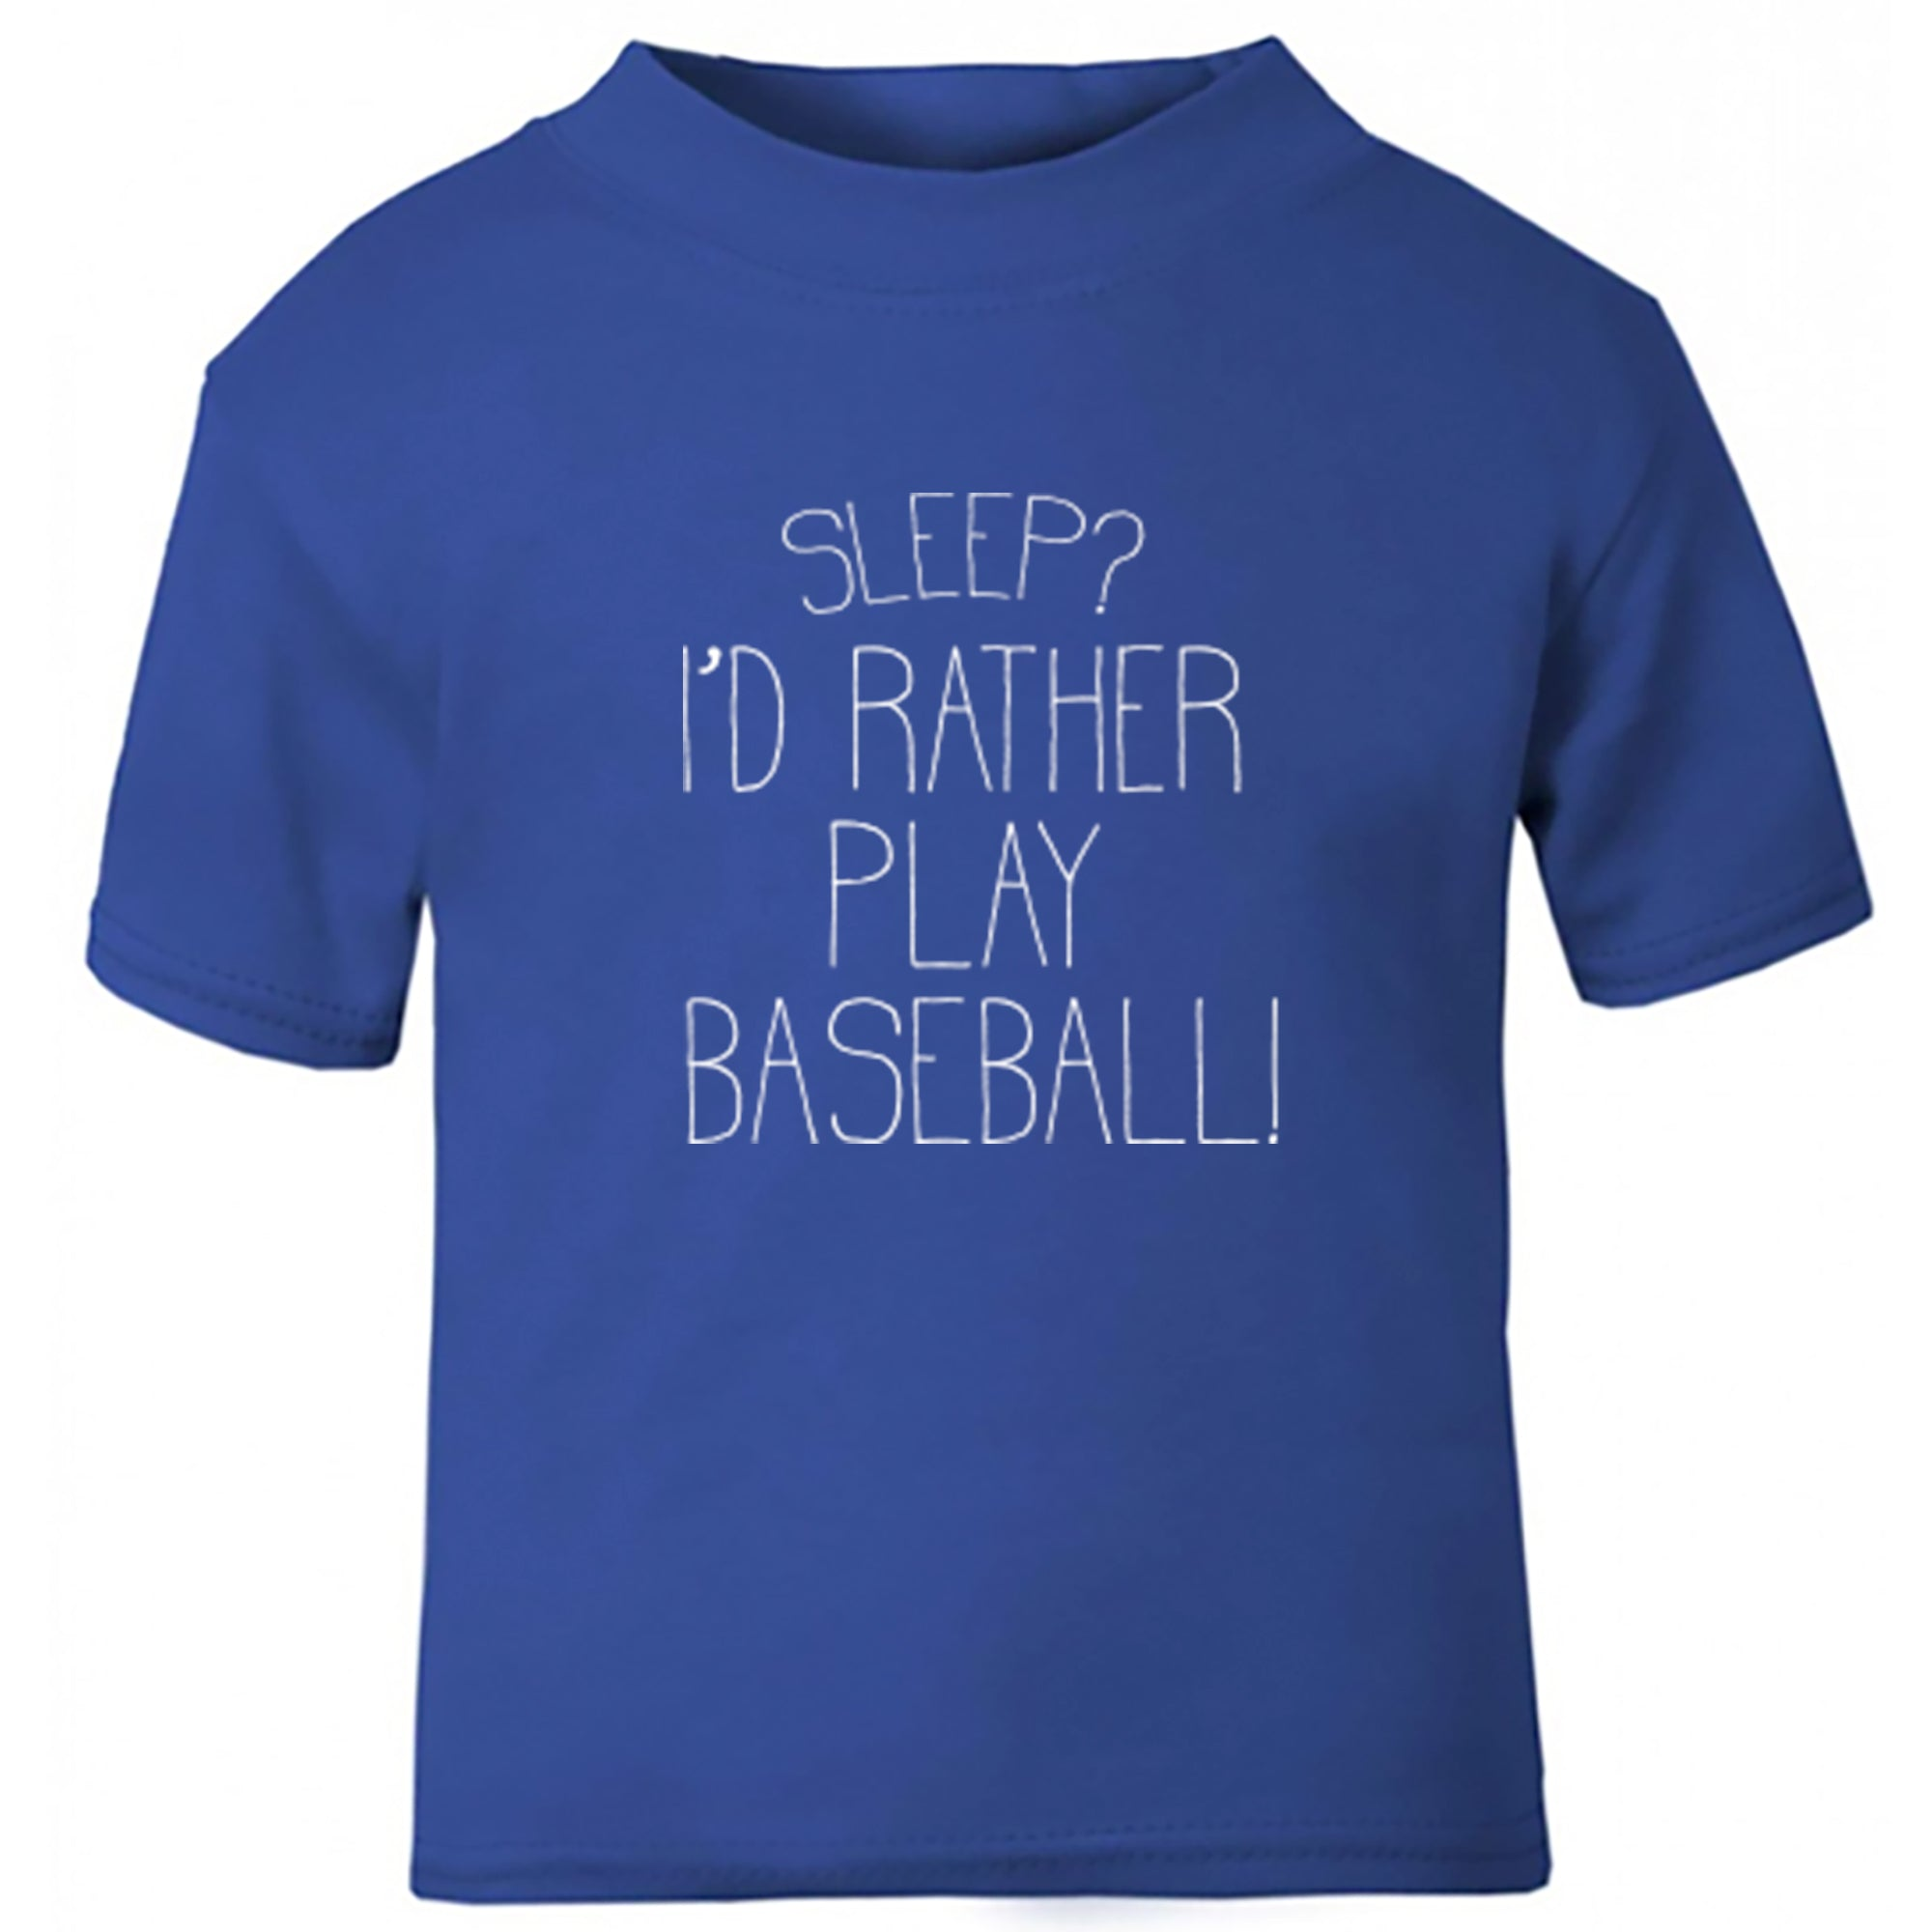 Sleep? I'd Rather Play Baseball! Childrens Ages 3/4-12/14 Unisex Fit T-Shirt S0469 - Illustrated Identity Ltd.